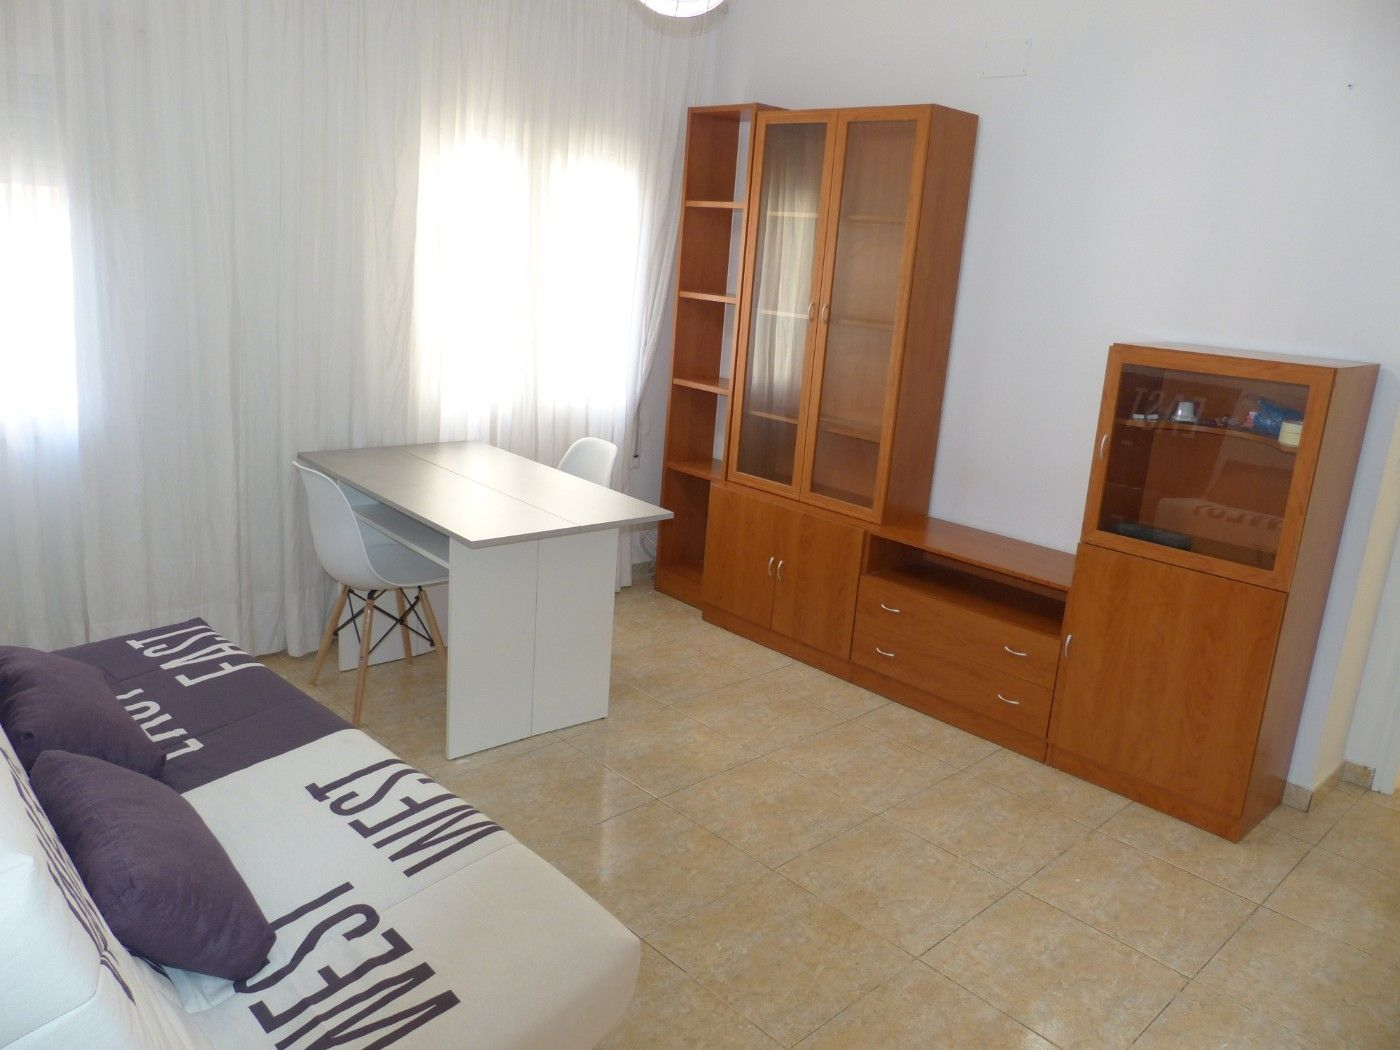 Alquiler Piso  Carrer major de jesus. Disponible apartir del dia 06/04